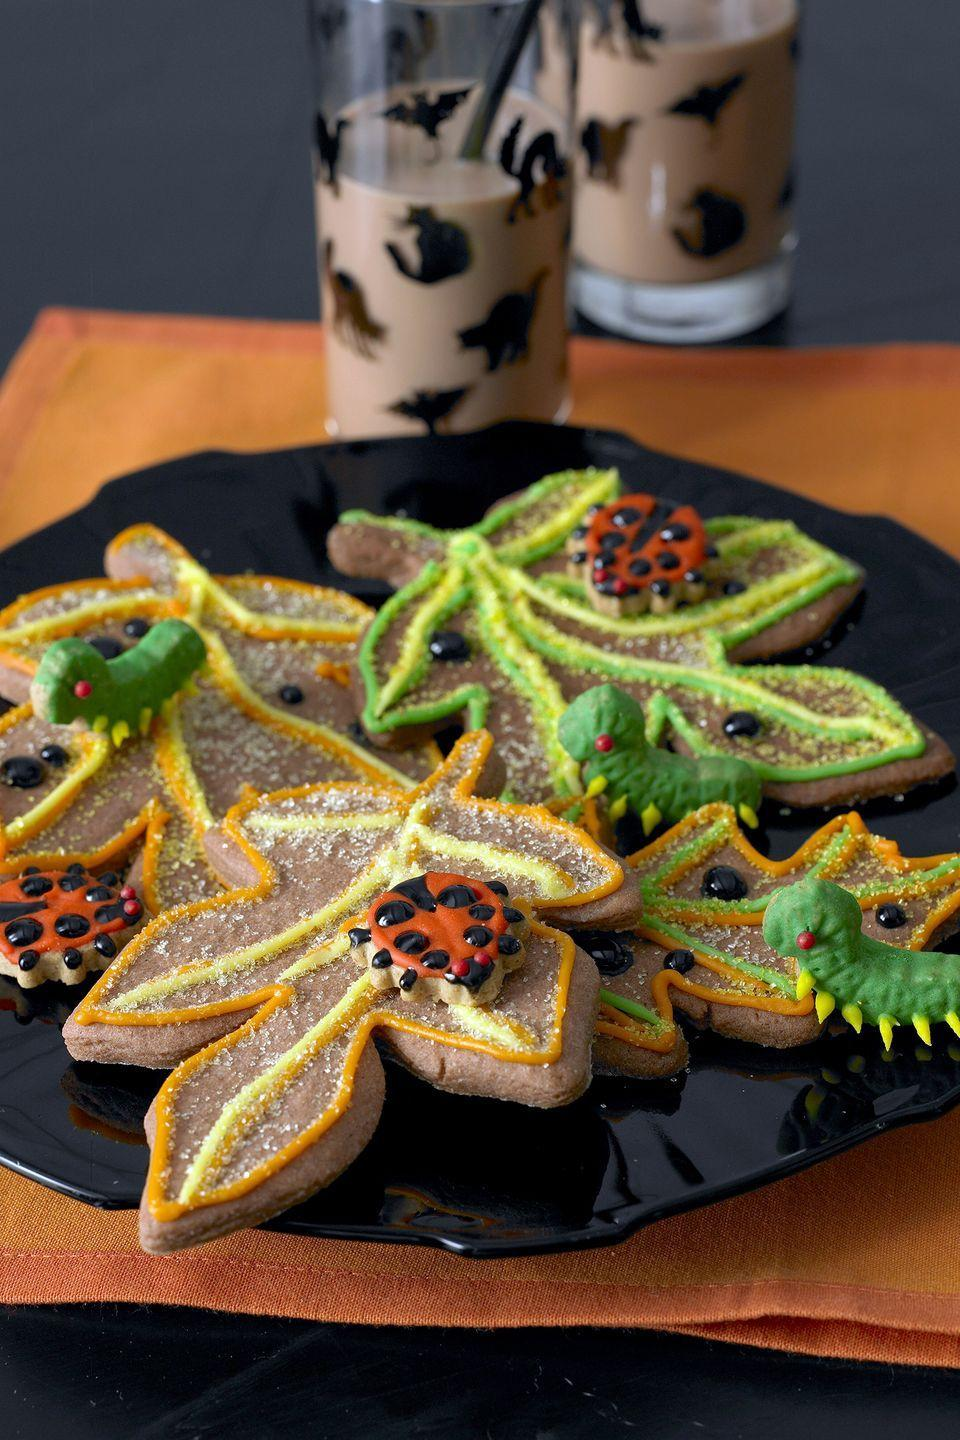 """<p>You'll need assorted sizes of <a href=""""https://www.amazon.com/Fall-Leaves-Cookie-Cutter-Recipe/dp/B074V1JVP7?tag=syn-yahoo-20&ascsubtag=%5Bartid%7C10070.g.2499%5Bsrc%7Cyahoo-us"""" rel=""""nofollow noopener"""" target=""""_blank"""" data-ylk=""""slk:leaf-shaped cookie cutters"""" class=""""link rapid-noclick-resp"""">leaf-shaped cookie cutters</a> to make these creepy crawly treats.</p><p><a href=""""https://www.womansday.com/food-recipes/food-drinks/recipes/a9947/buggy-leaf-spice-cookies-121371/"""" rel=""""nofollow noopener"""" target=""""_blank"""" data-ylk=""""slk:Get the recipe for Buggy Leaf Spice cookies."""" class=""""link rapid-noclick-resp""""><strong><em>Get the recipe for Buggy Leaf Spice cookies.</em></strong></a></p>"""